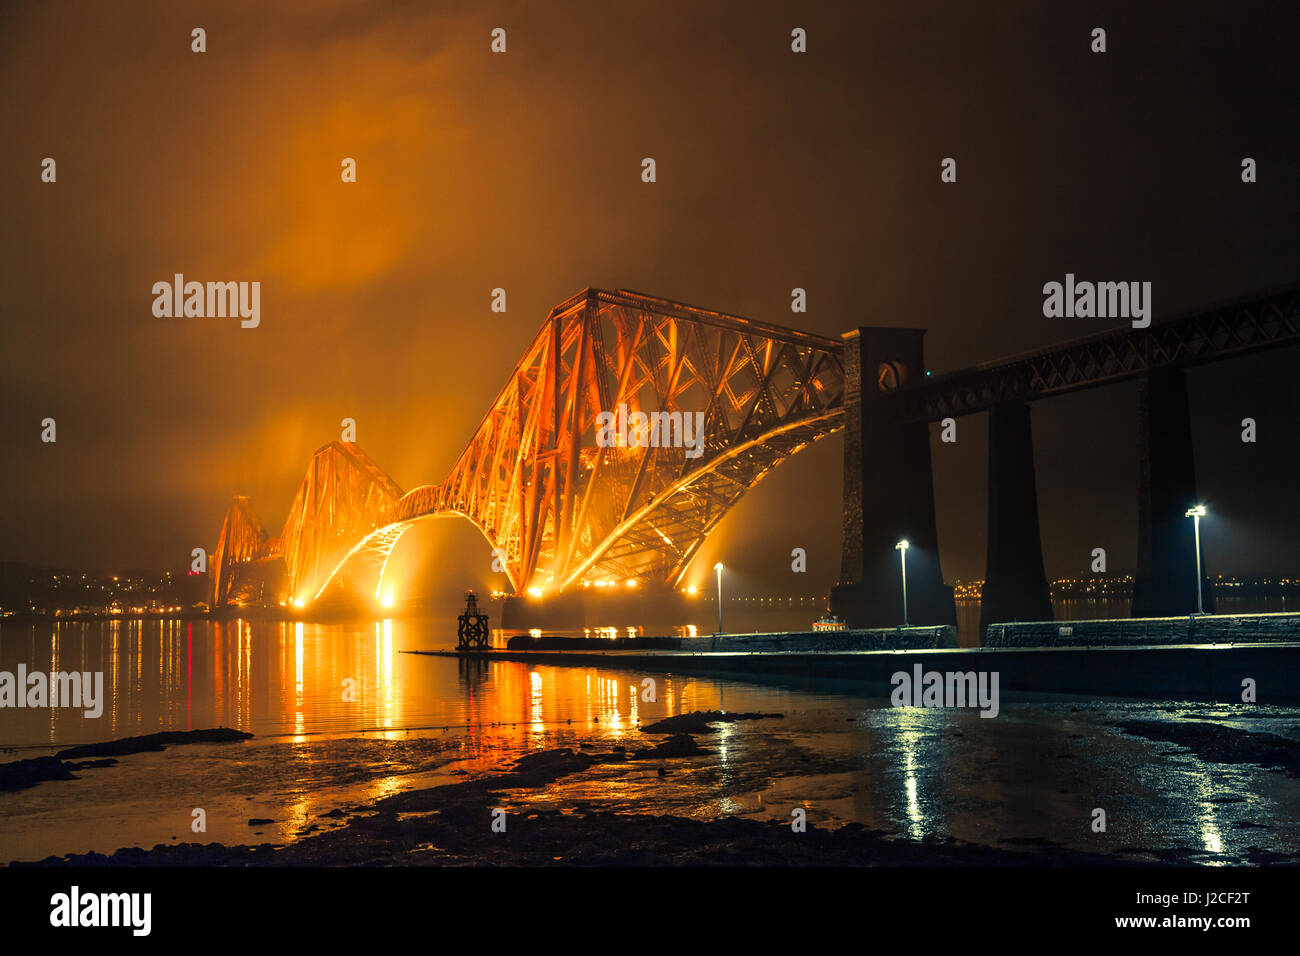 The Forth Rail Bridge lit up at night. Golden light shining in to the sky above. South Queensferry, Edinburgh, Scotland - Stock Image